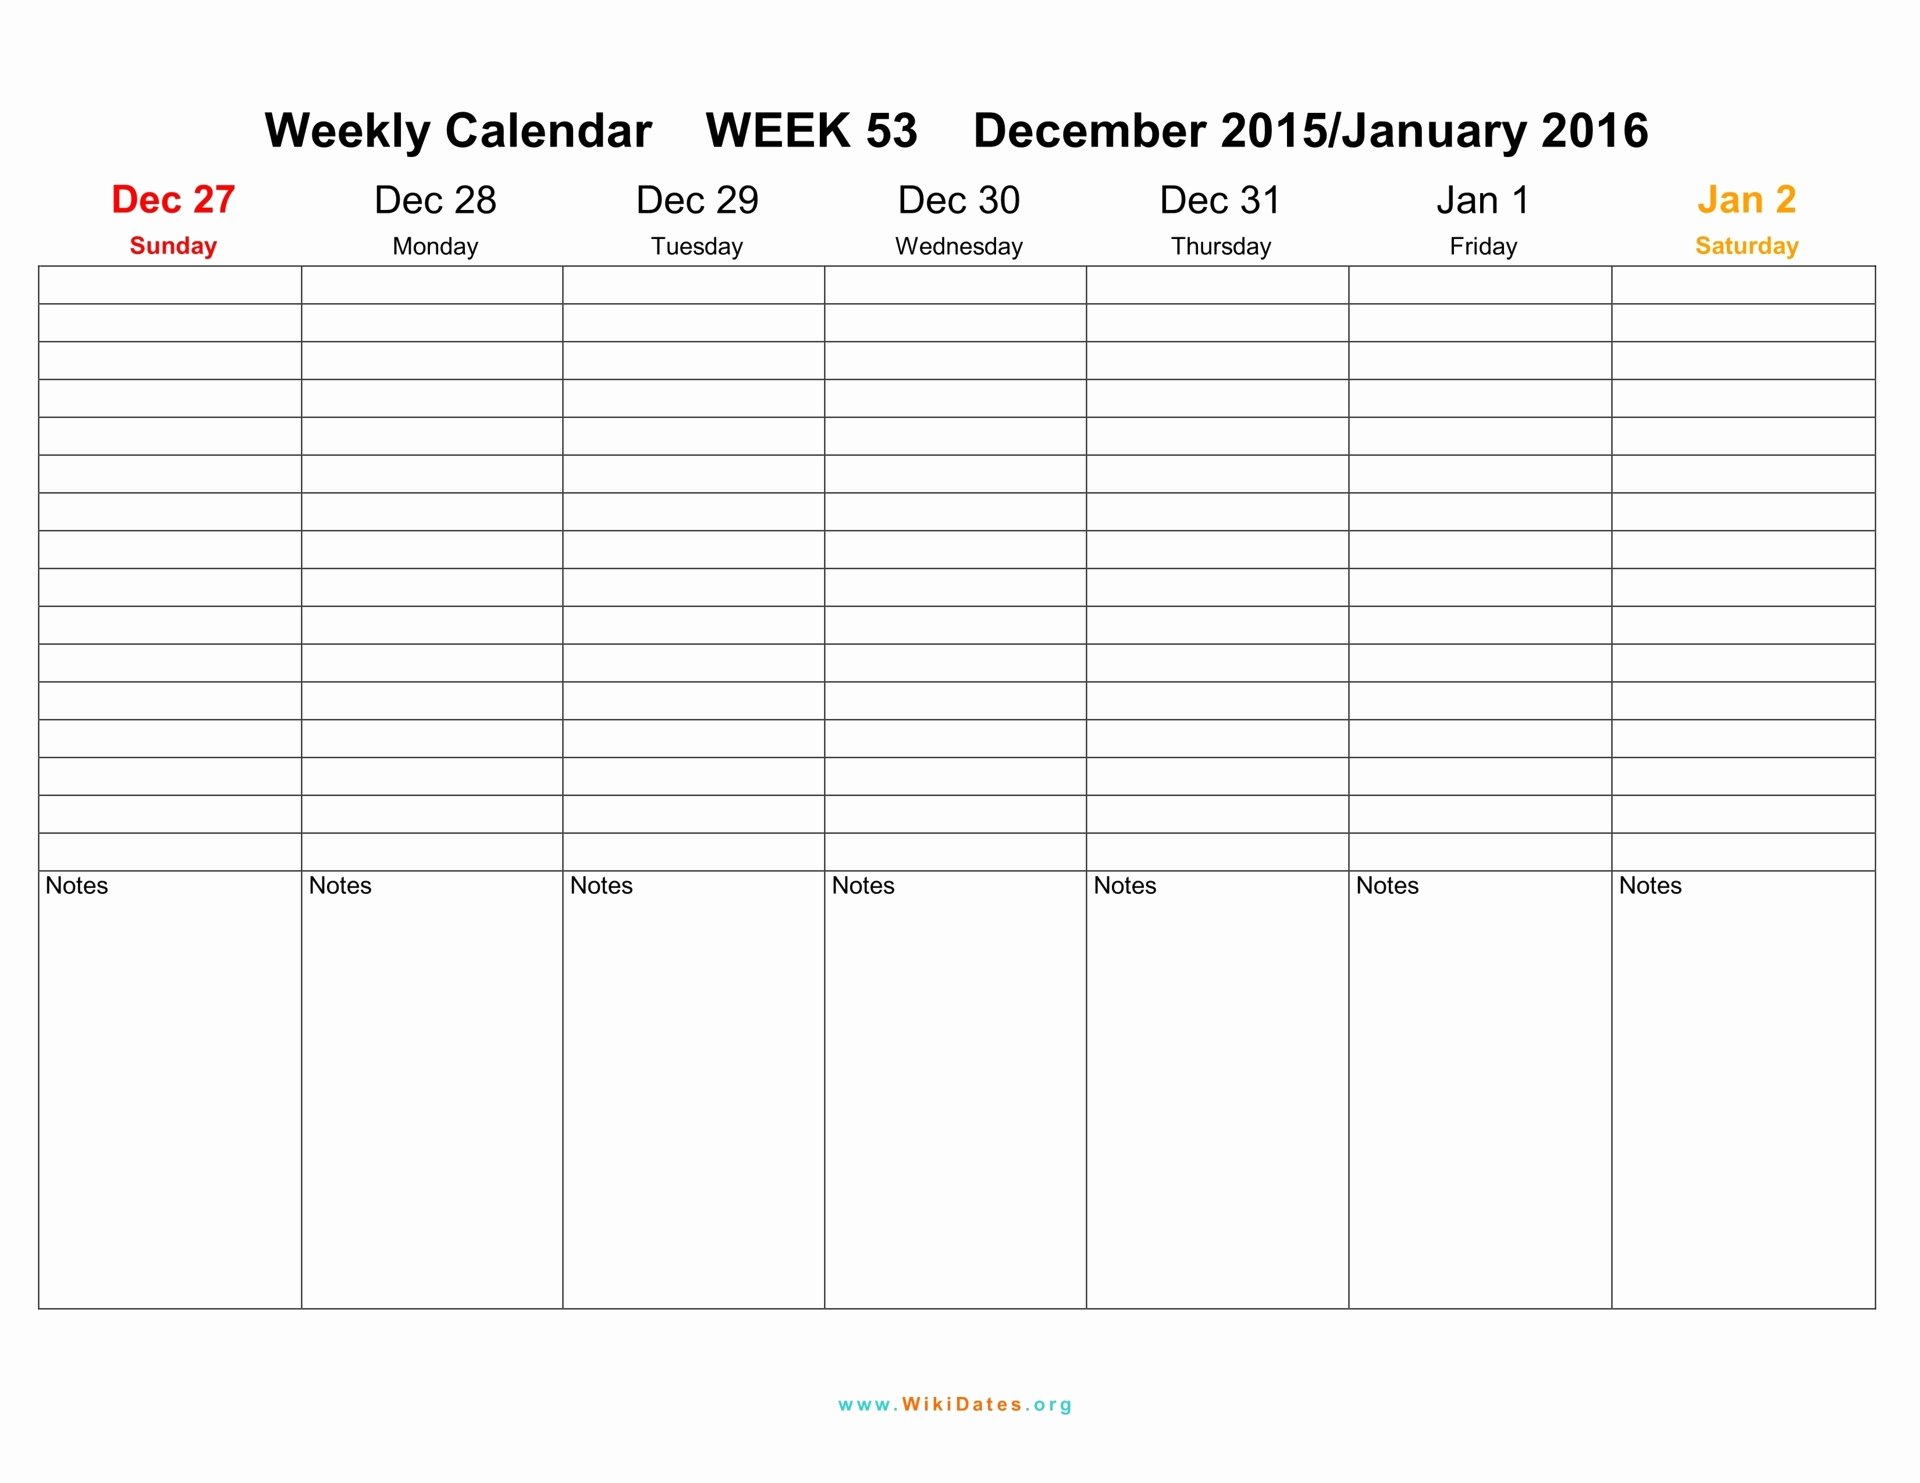 Weekly Calendar Template 2017 Beautiful Weekly Calendar 2016 2017 2018